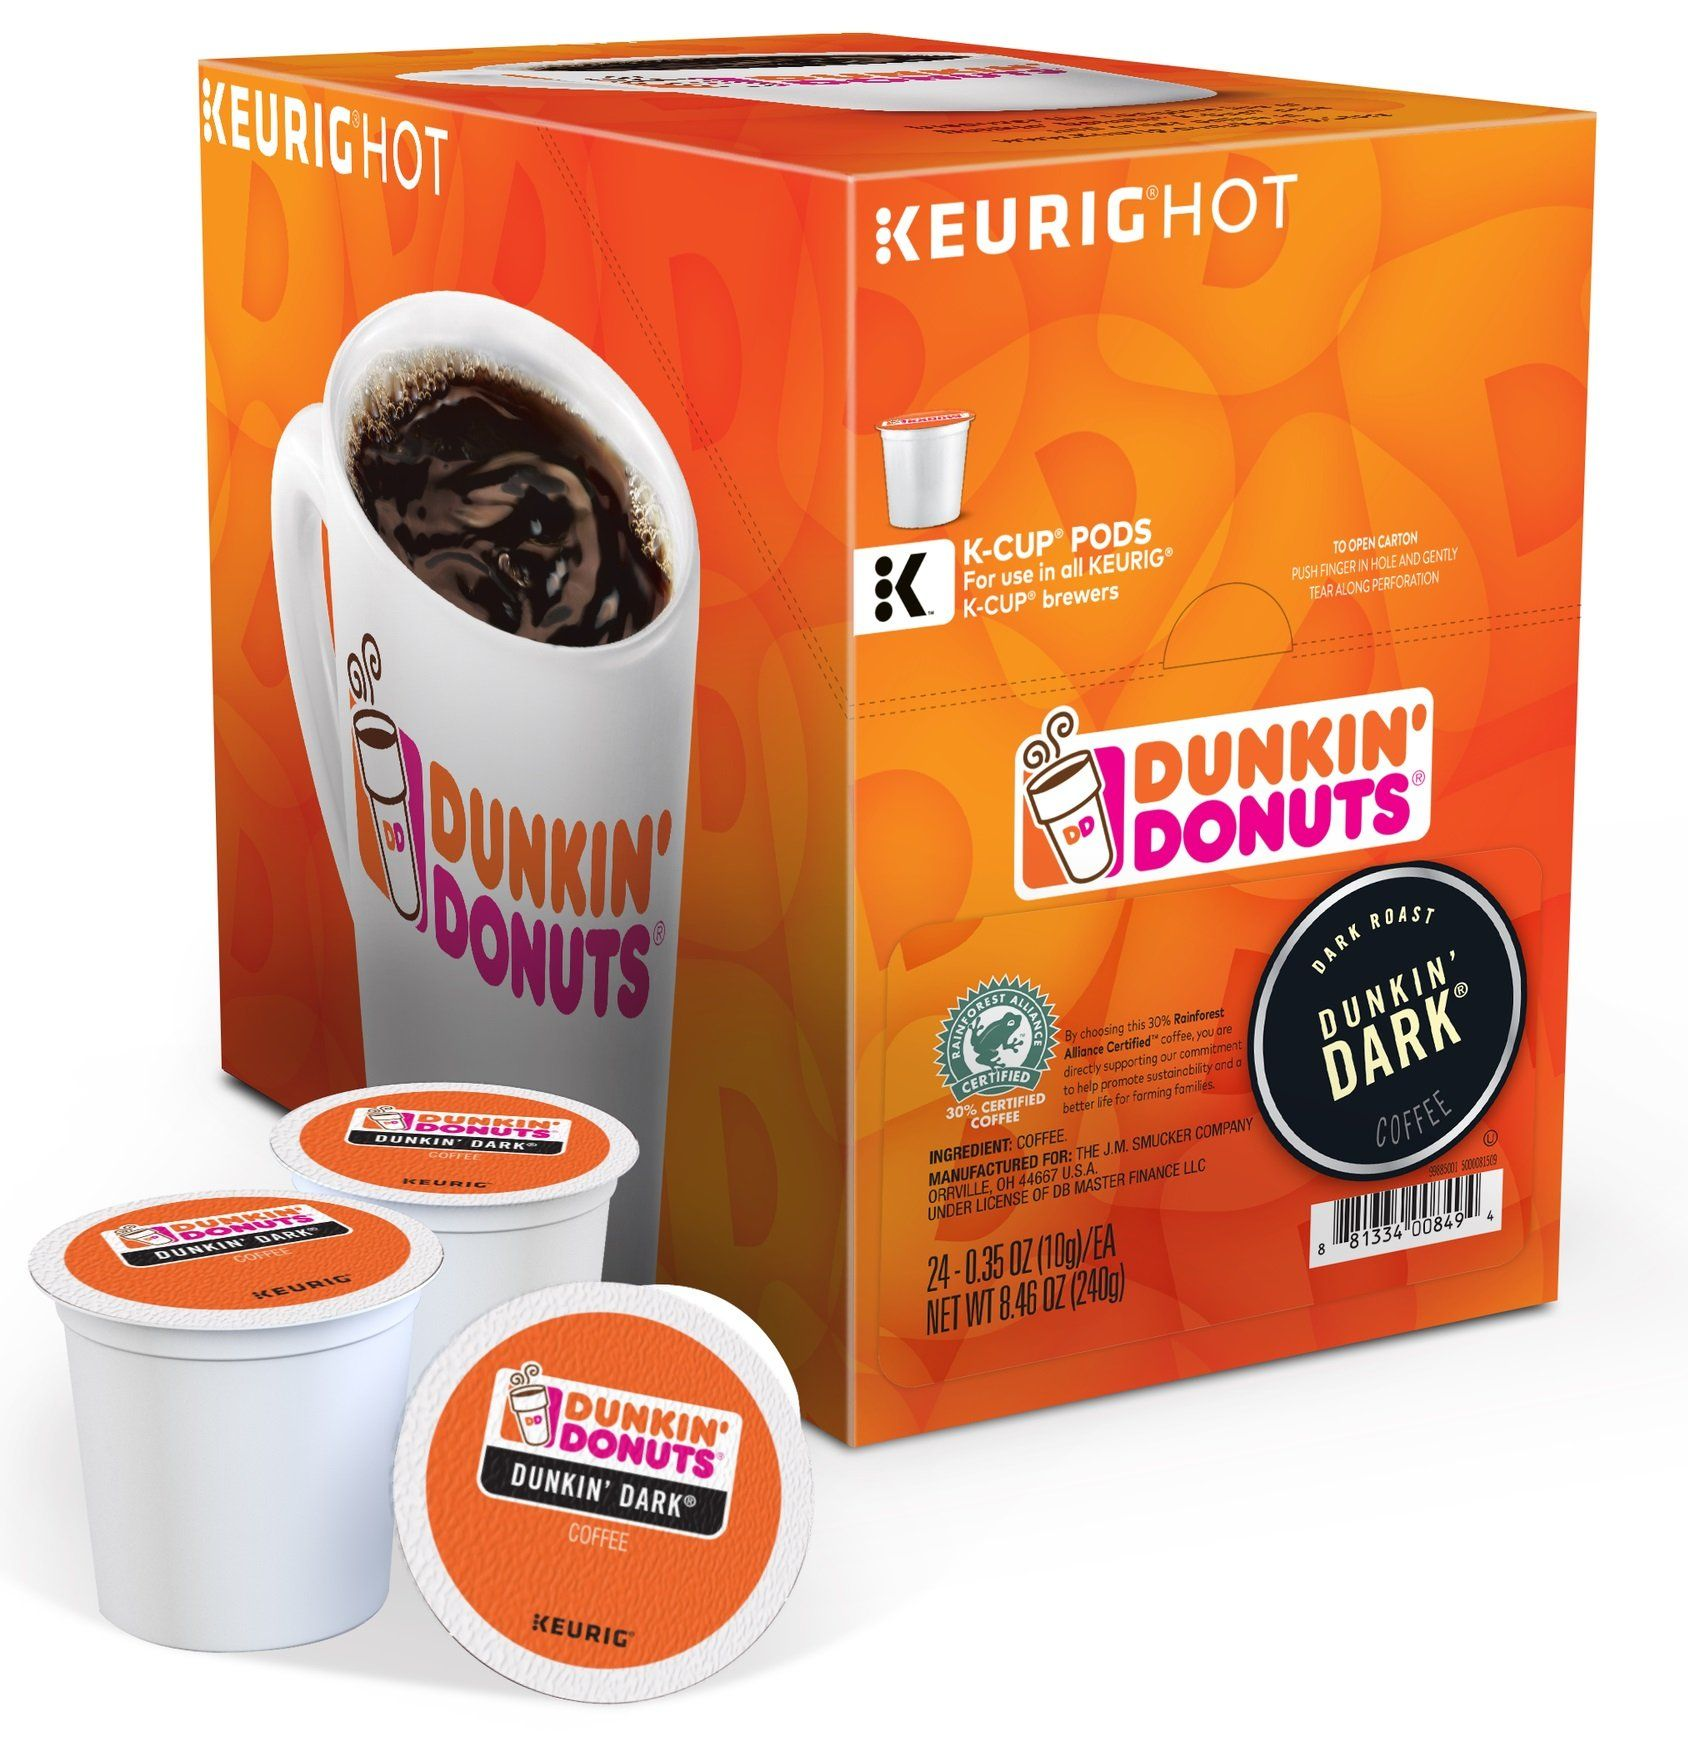 Dunkin Donuts Dunkin Dark KCups 144 Count with Bonus KCups